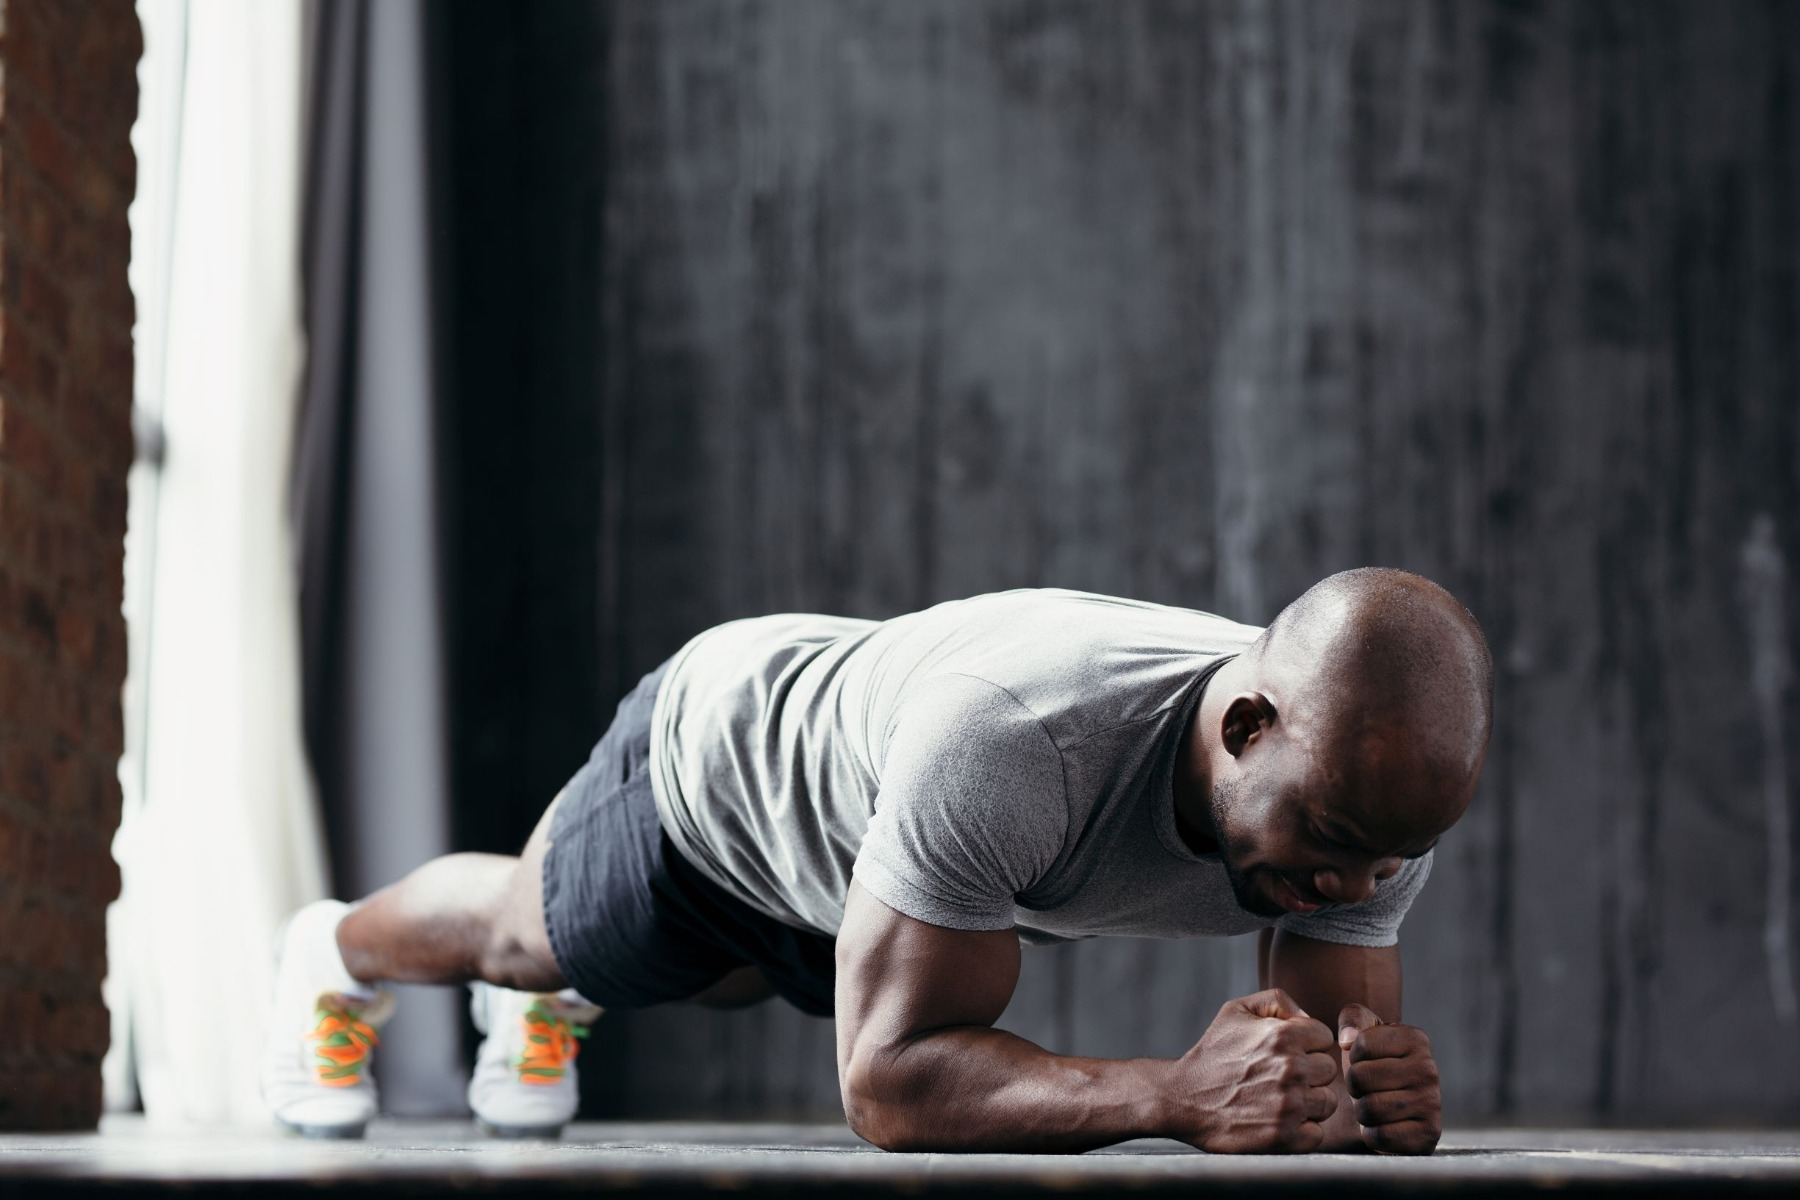 Man on exercise mat in plank position